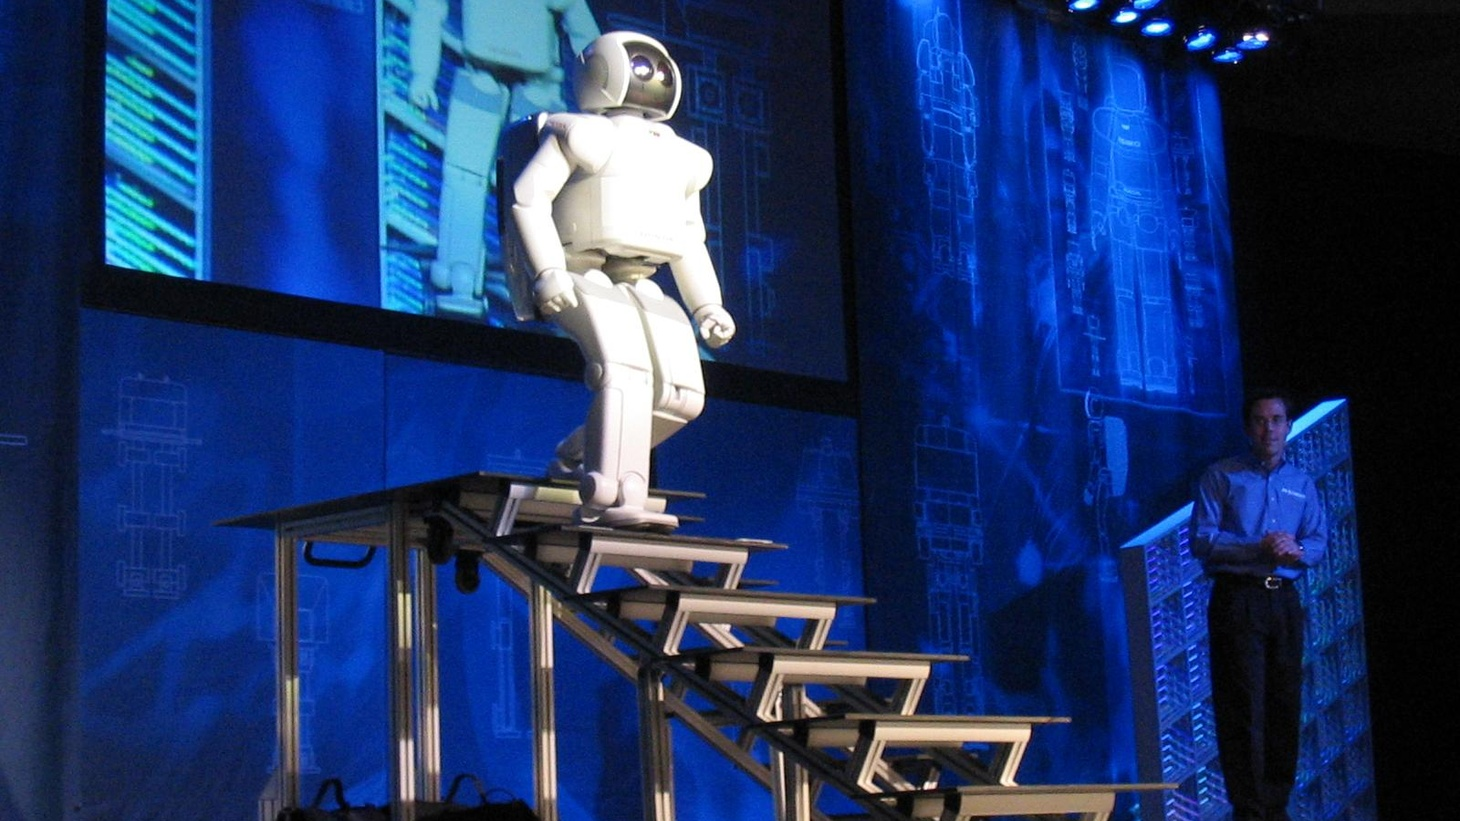 Stephen Hawking, the world-renowned physicist, says it's already time to get serious about science fiction made real.